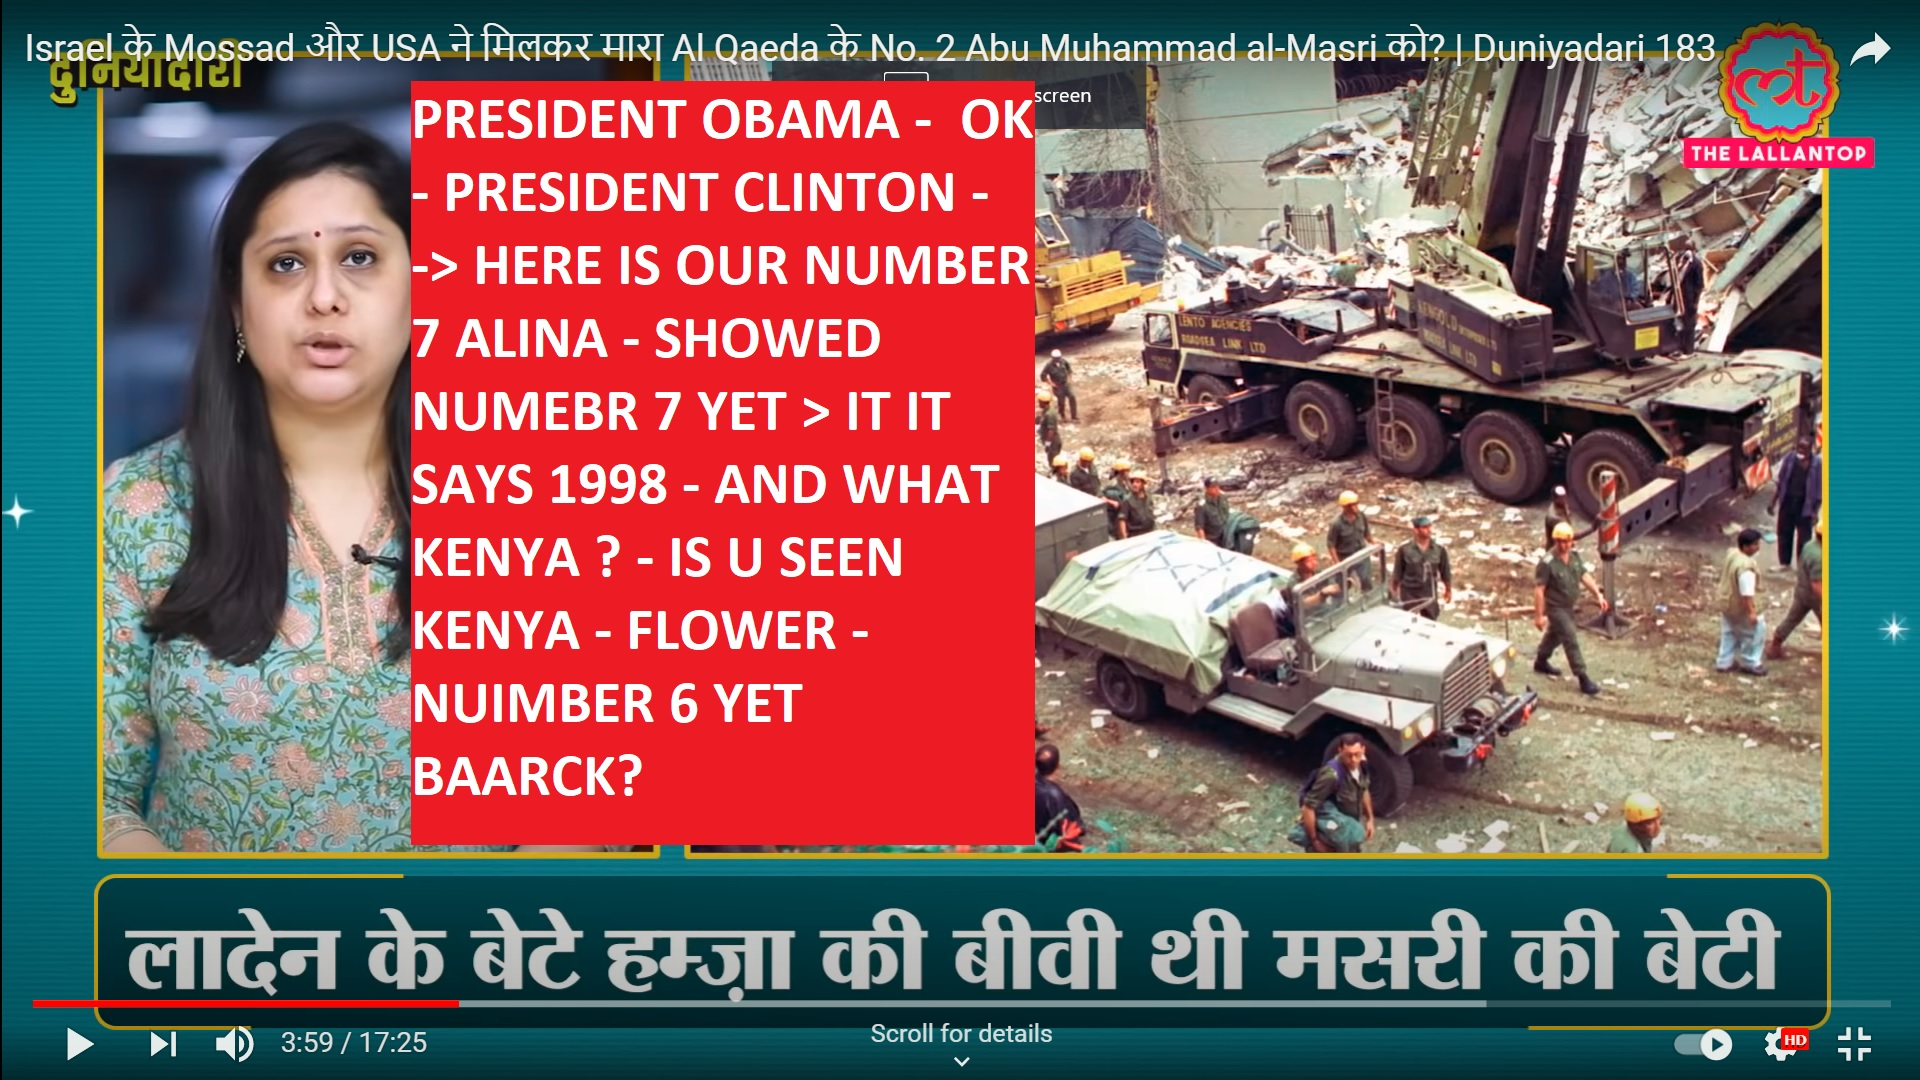 AJAY MISHAR YONI NETANAYHU BILL CLINTON AND AJAY MISHRA AL MASRI - AL QAEDA - NUMEBR 7 PLUS NUMBER 1986 AND KENYA AND ROSE AND 8 AN OBAMA - AND NUMBER - 7 AND 1986 AND ALINA AND SONIA AND WHO